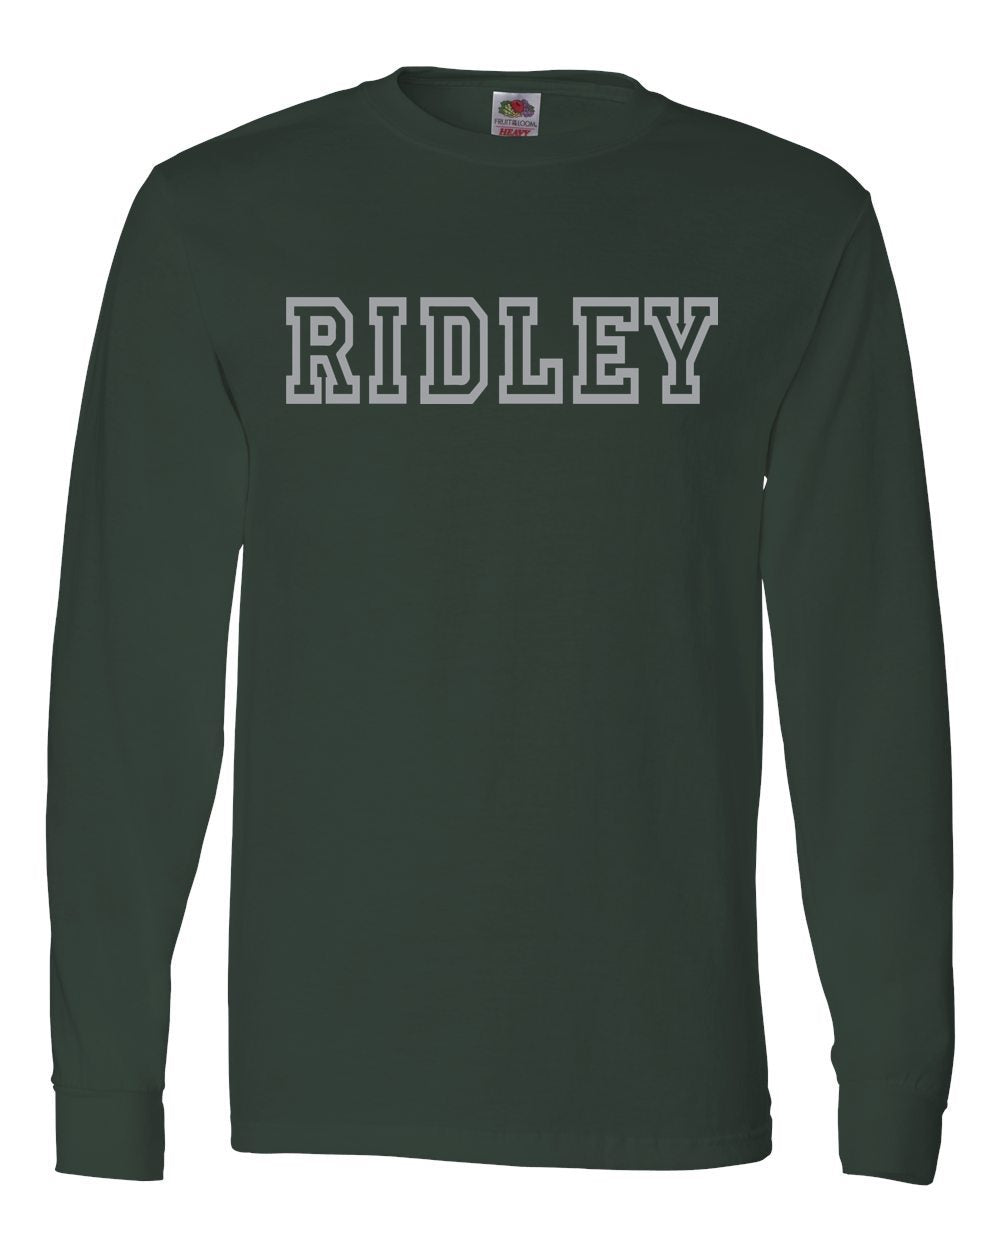 Adult Green & Gray Ridley Long Sleeve T-Shirt